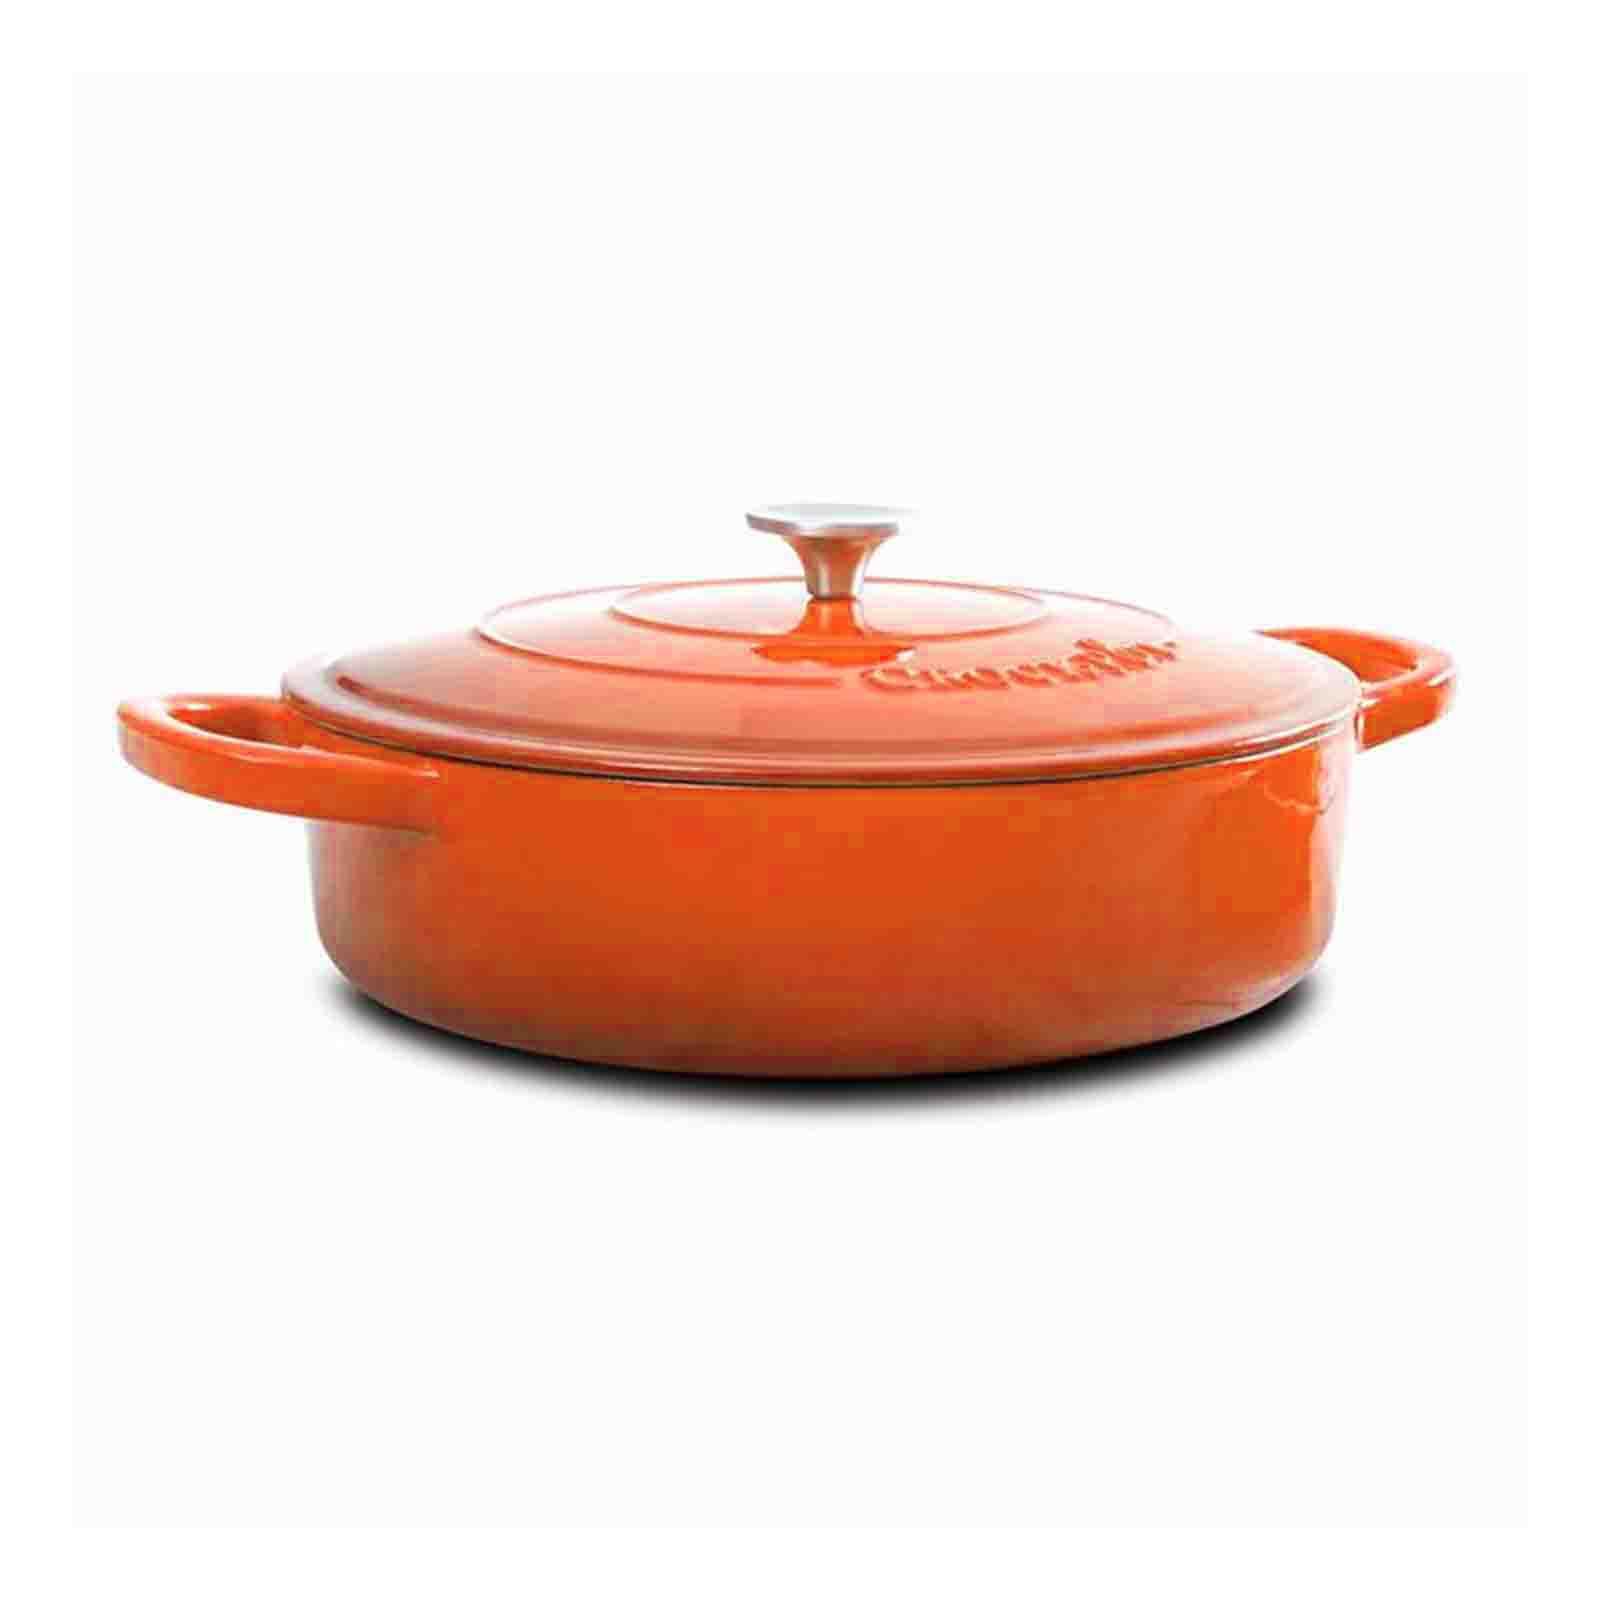 Crock Pot Artisan Enameled Cast Iron 5 Qt Round Braiser Pan with Self Basting Lid, Sunset Orange by Crock-Pot